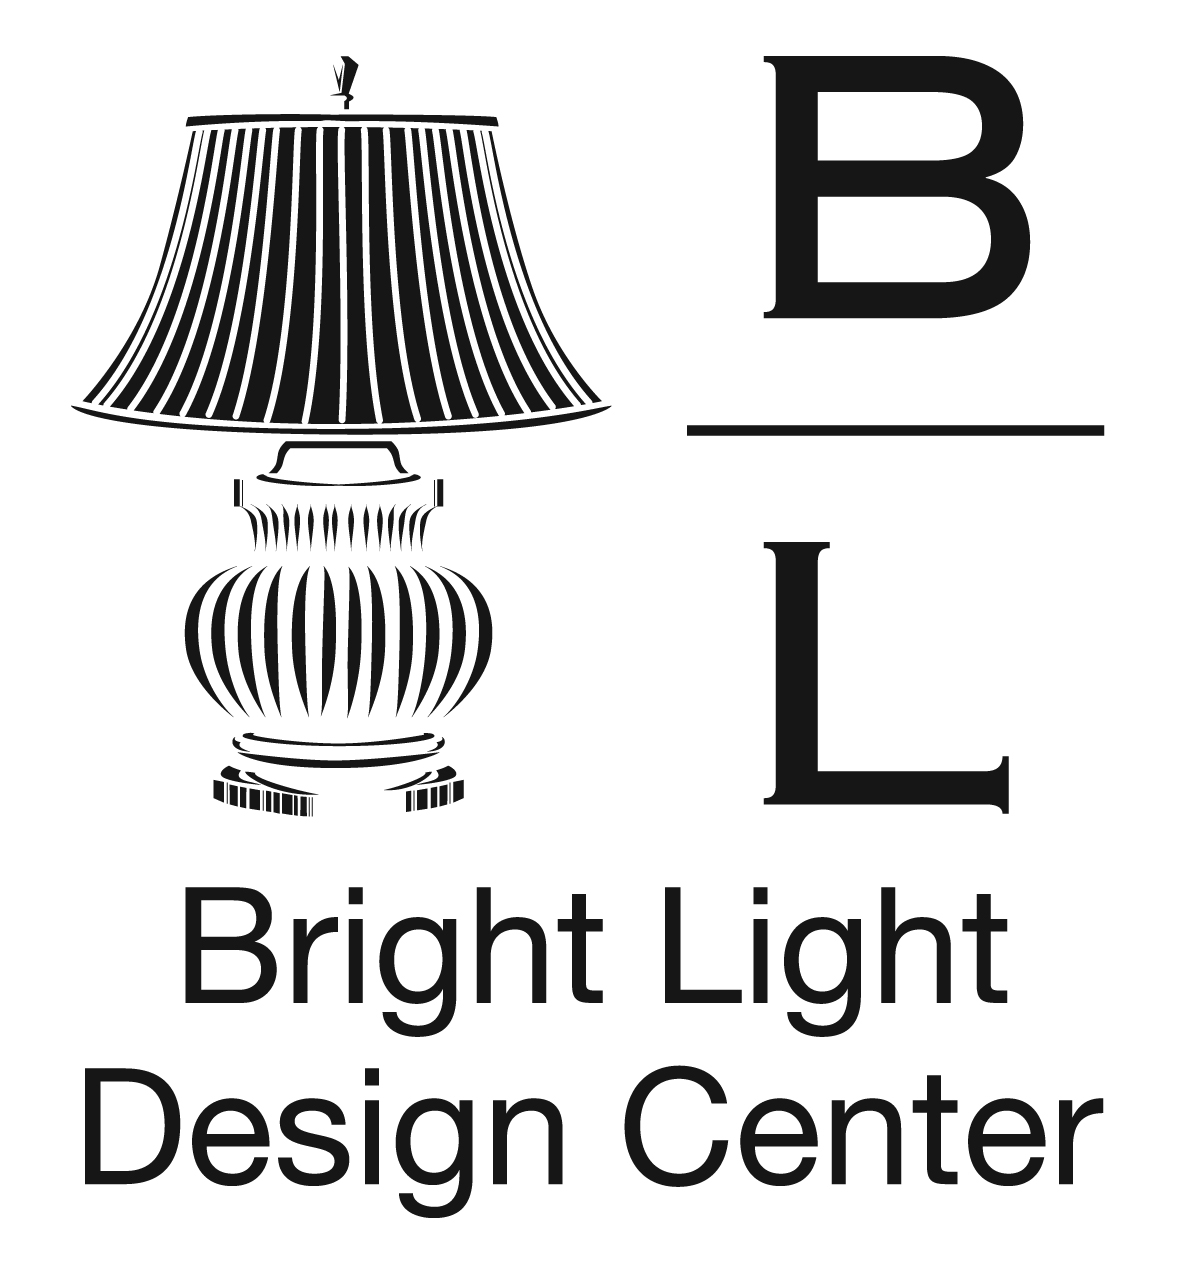 Bright Light Design Center